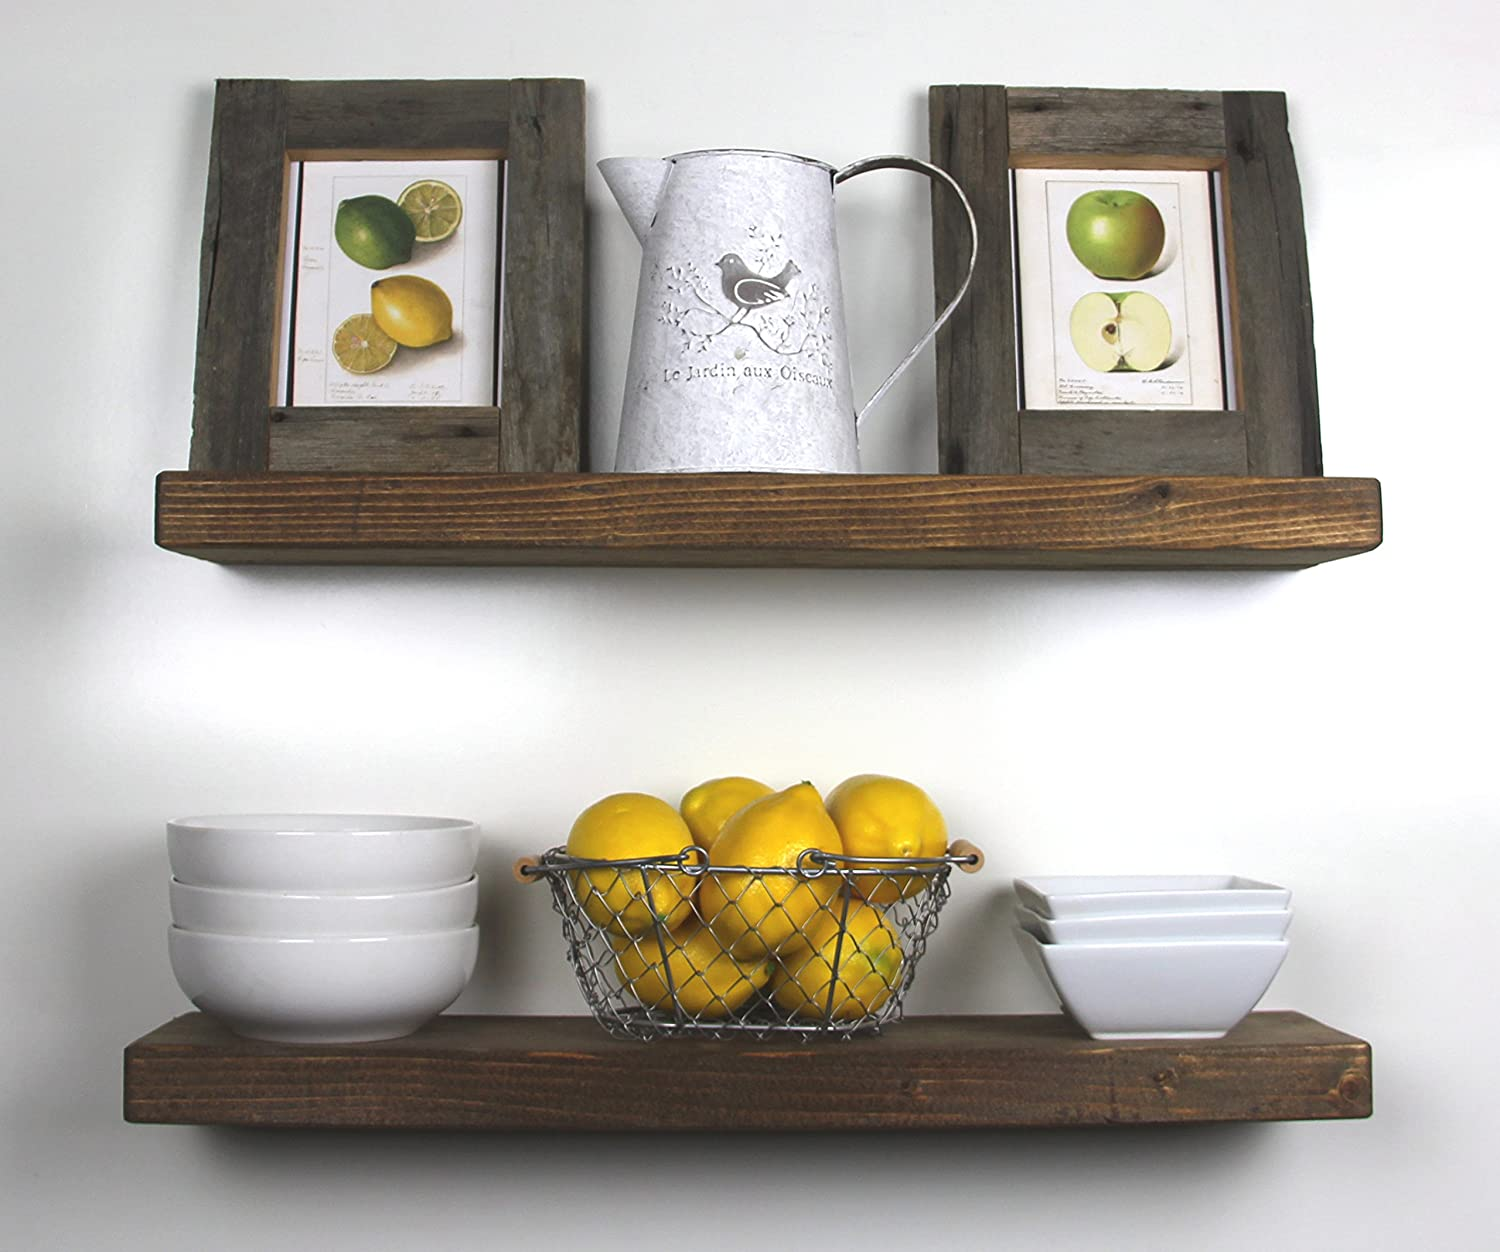 Handmade Rustic Wood Floating Wall Shelves,